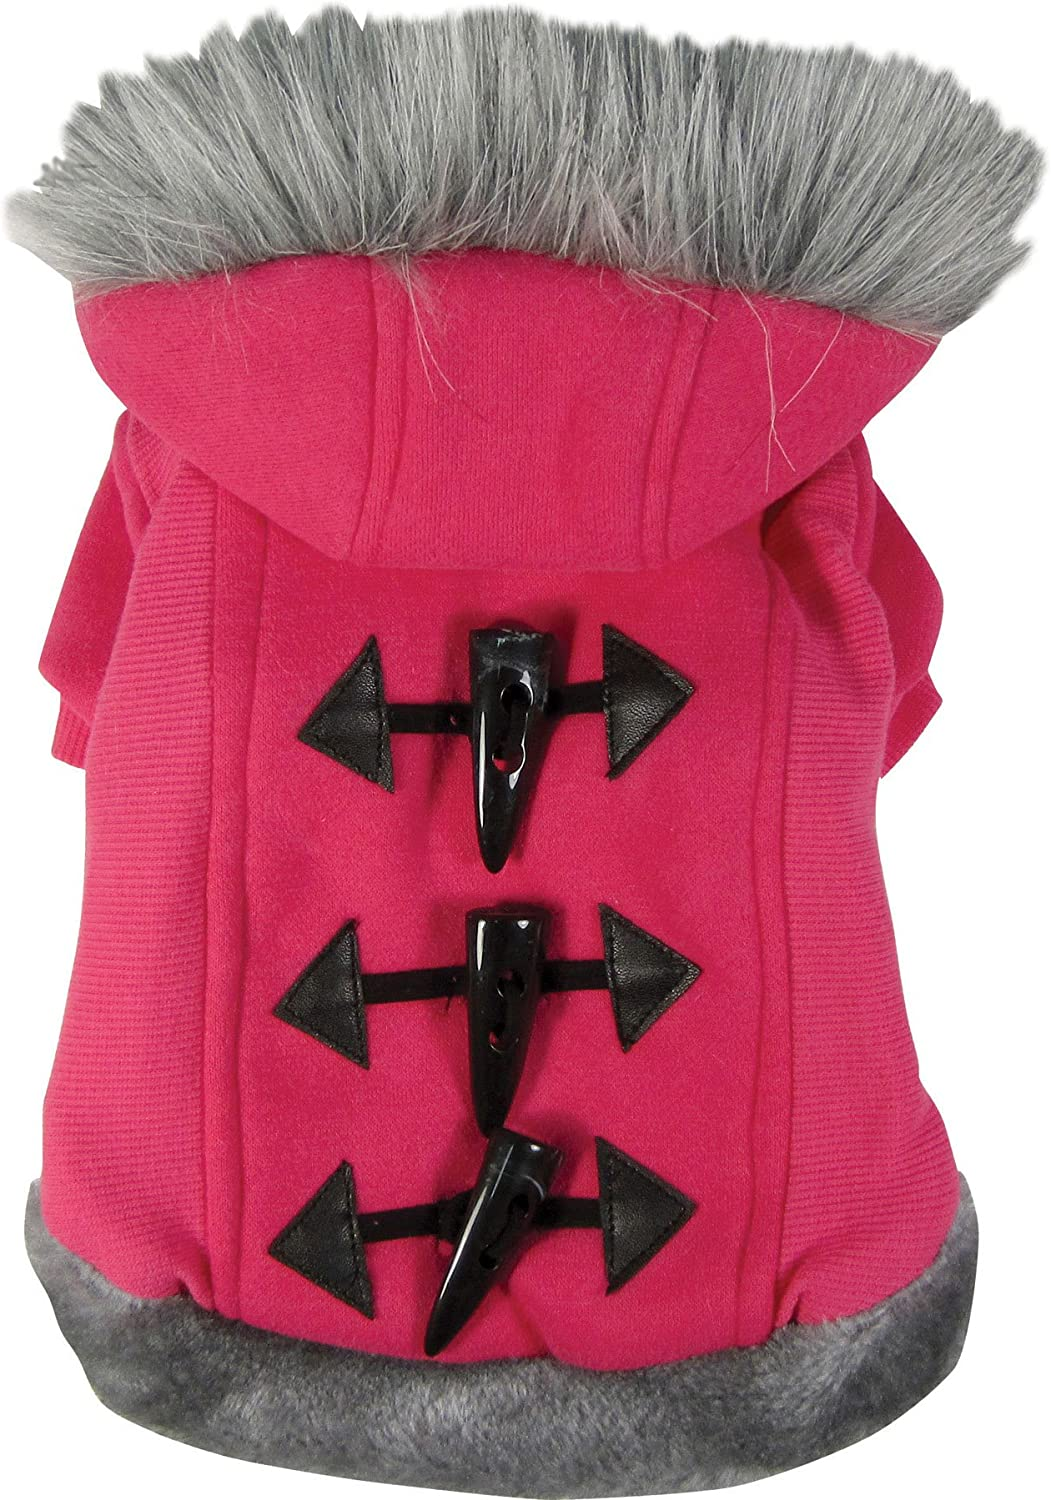 Dogit Style Dog Hoodie Sweater with Faux Fur Trimmed Hood, Large, Pink